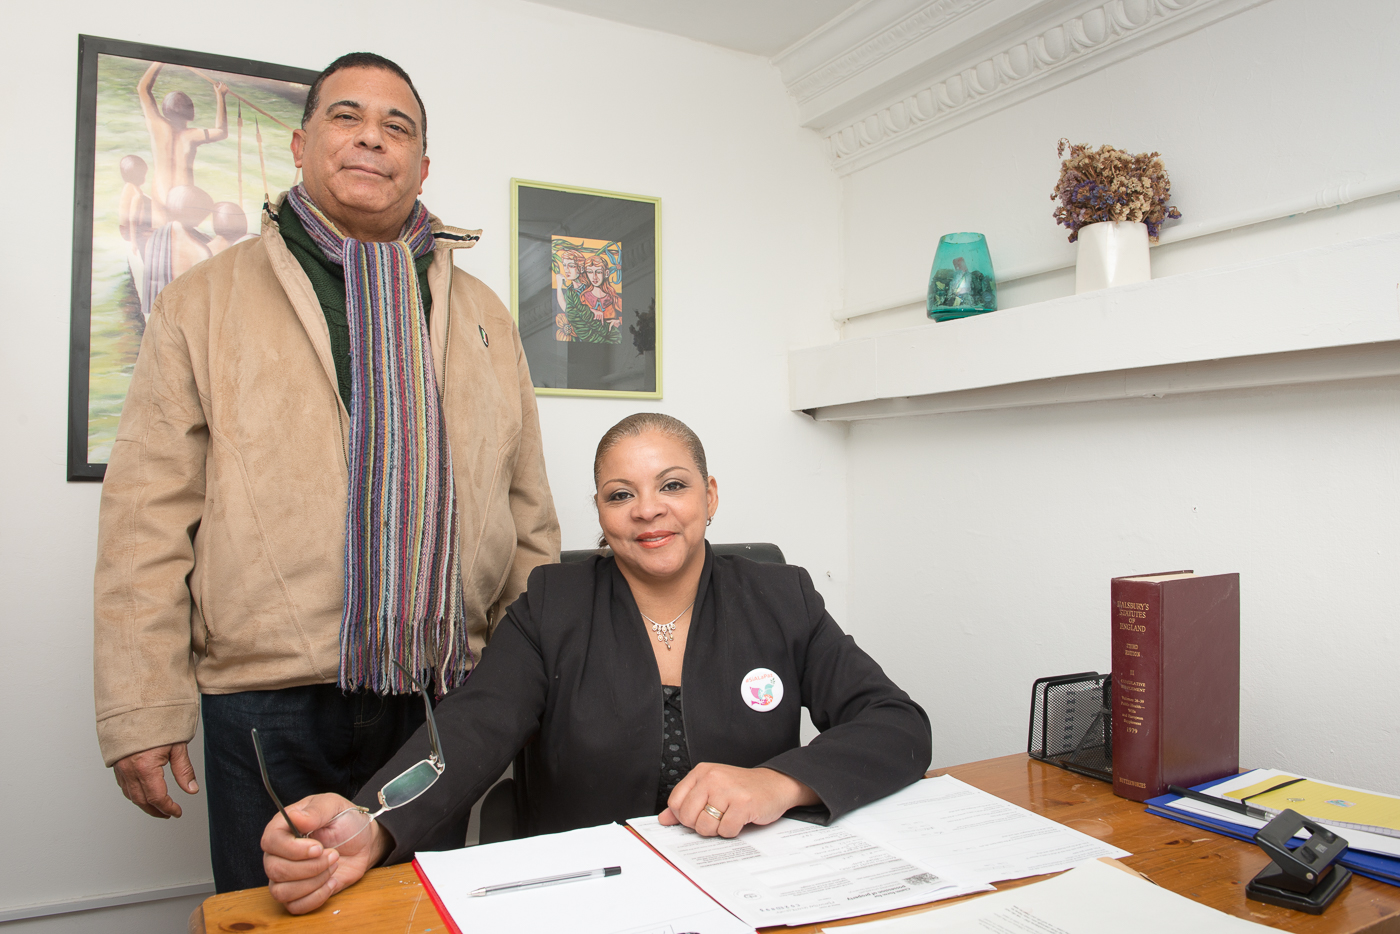 Marta Hinestroza and Pedro Velazquez in their office